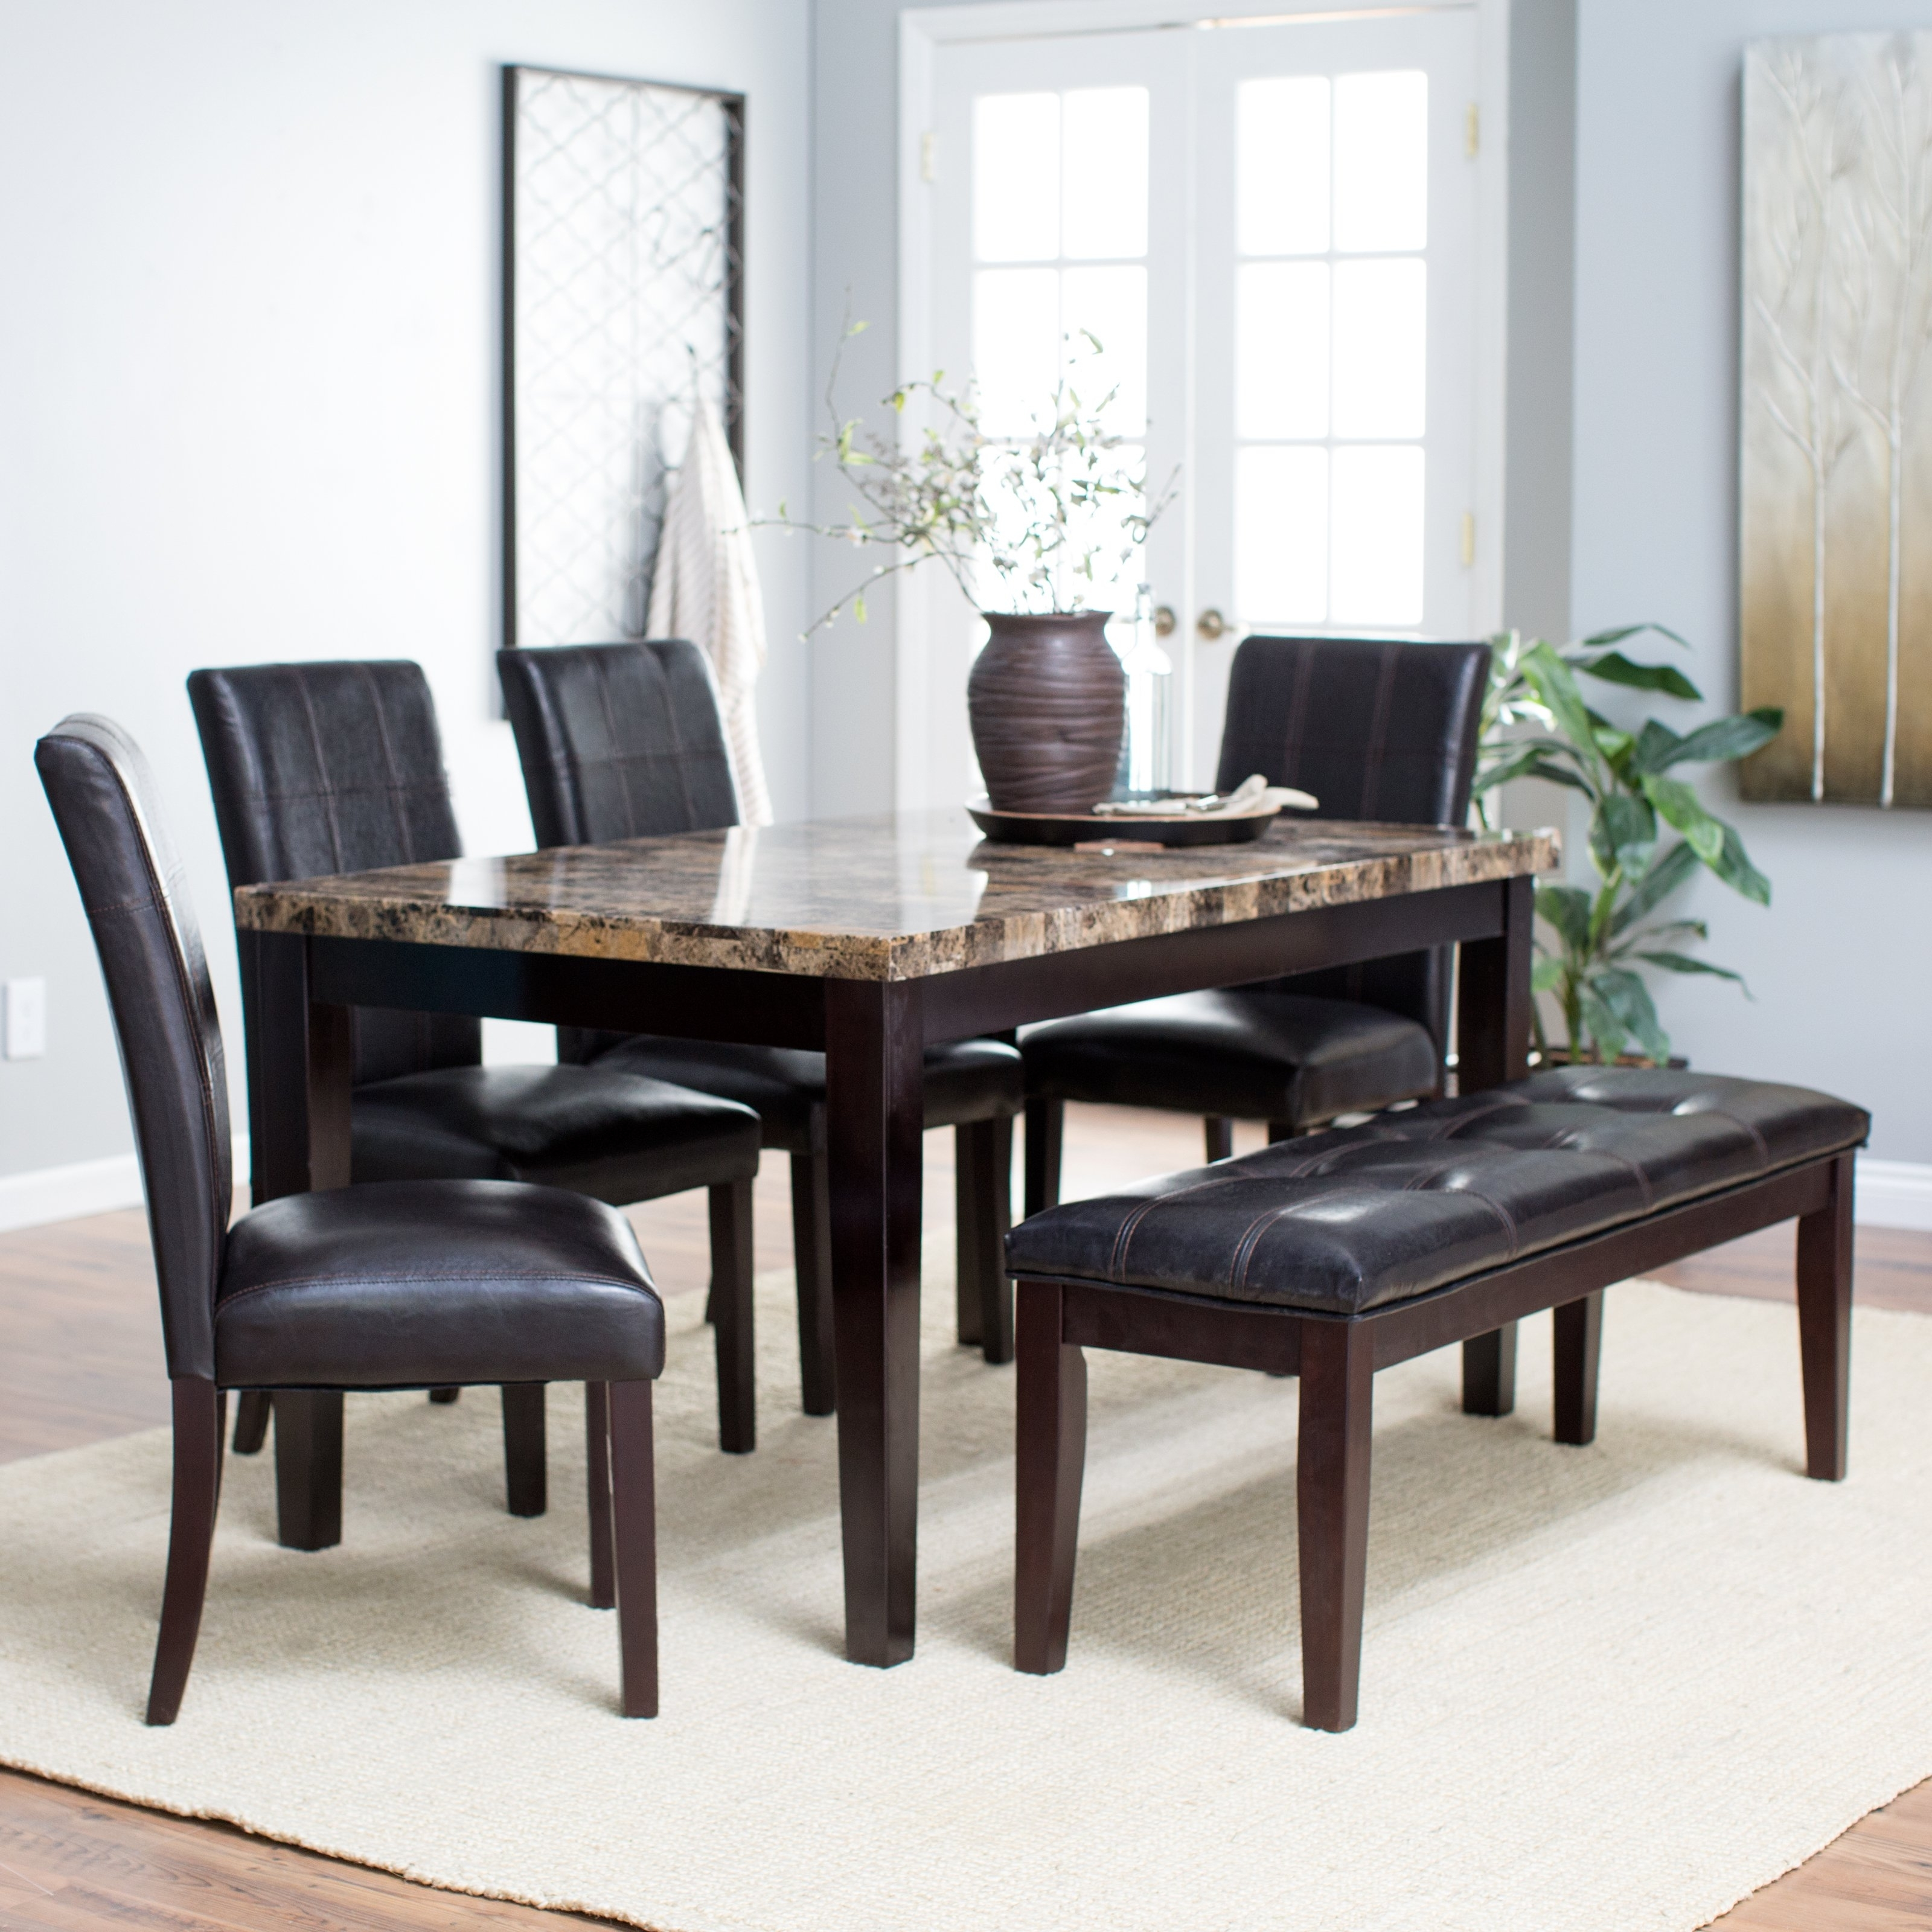 Well Known 6 Seat Dining Table Sets In Types Of Dining Table Sets – Pickndecor (View 23 of 25)